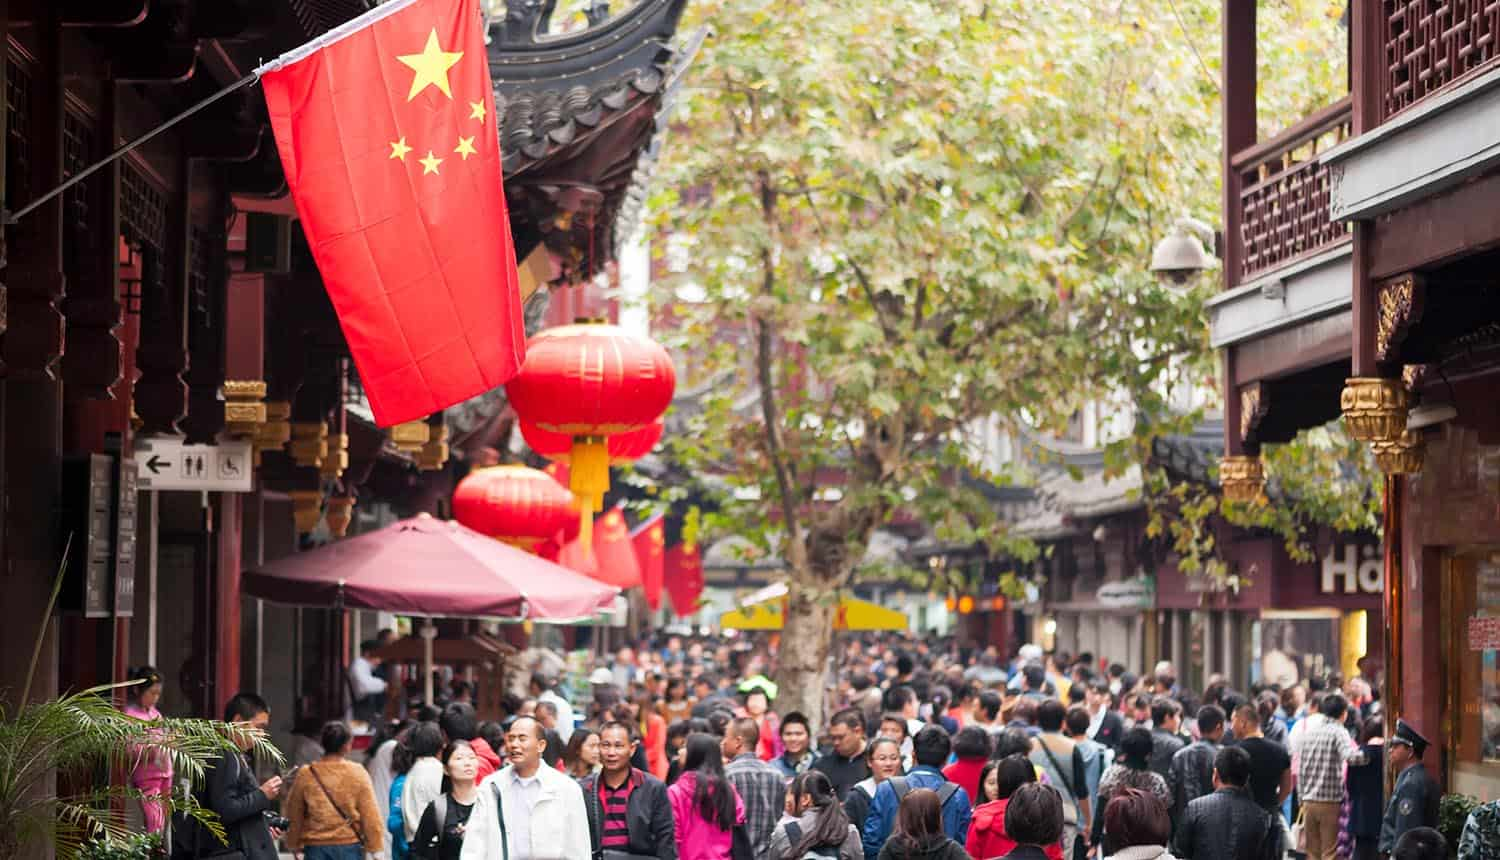 Chinese flag in a crowded old shopping street in China showing the big business of selling customer data